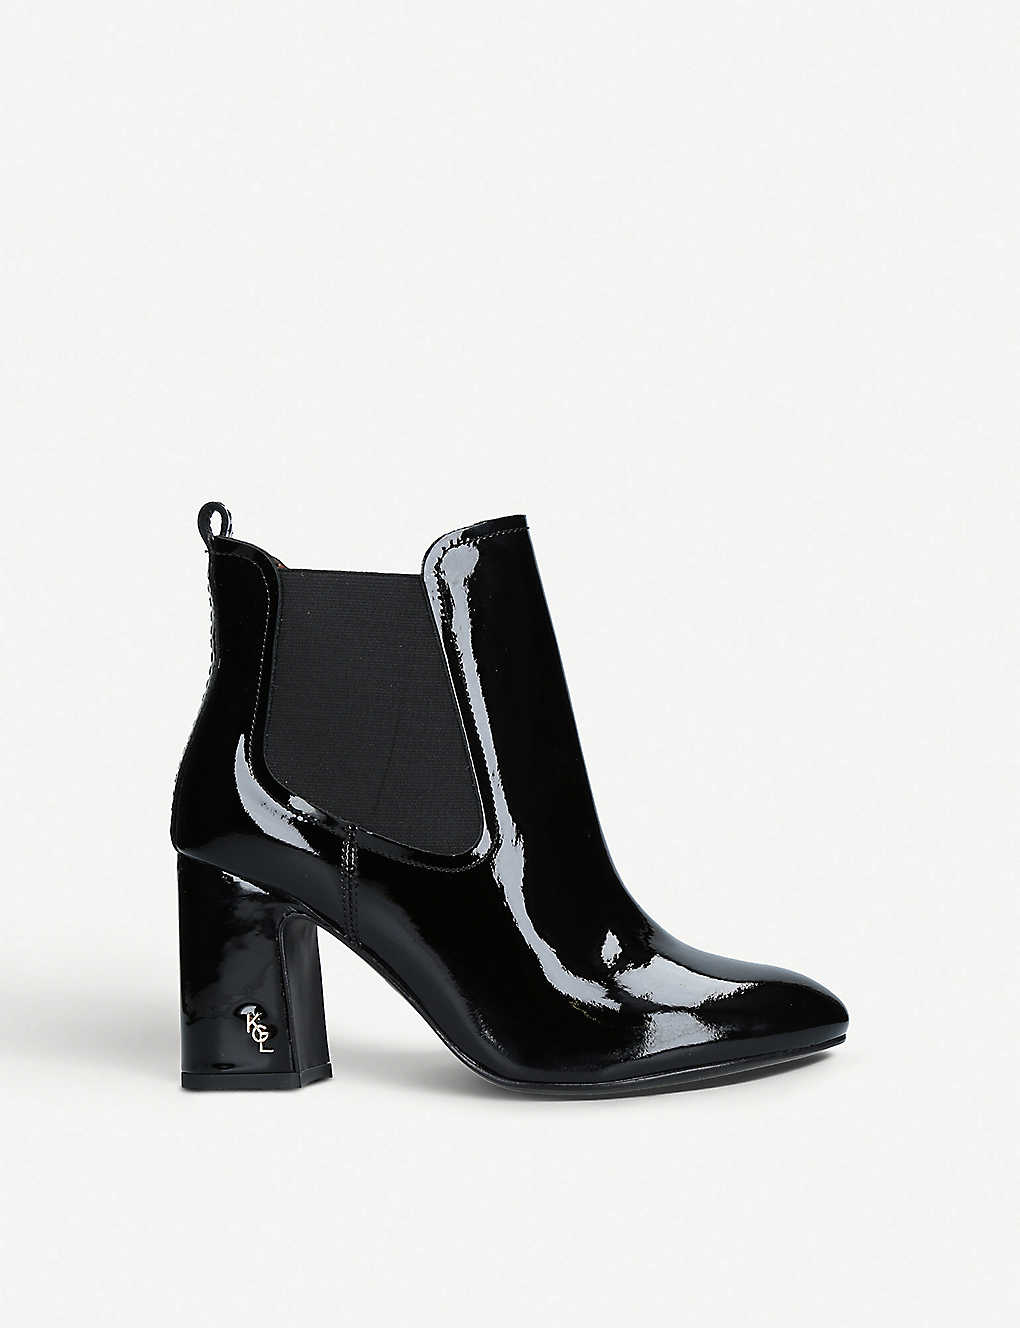 823854c5e67 KURT GEIGER LONDON - Raylan heeled patent-leather ankle boots ...